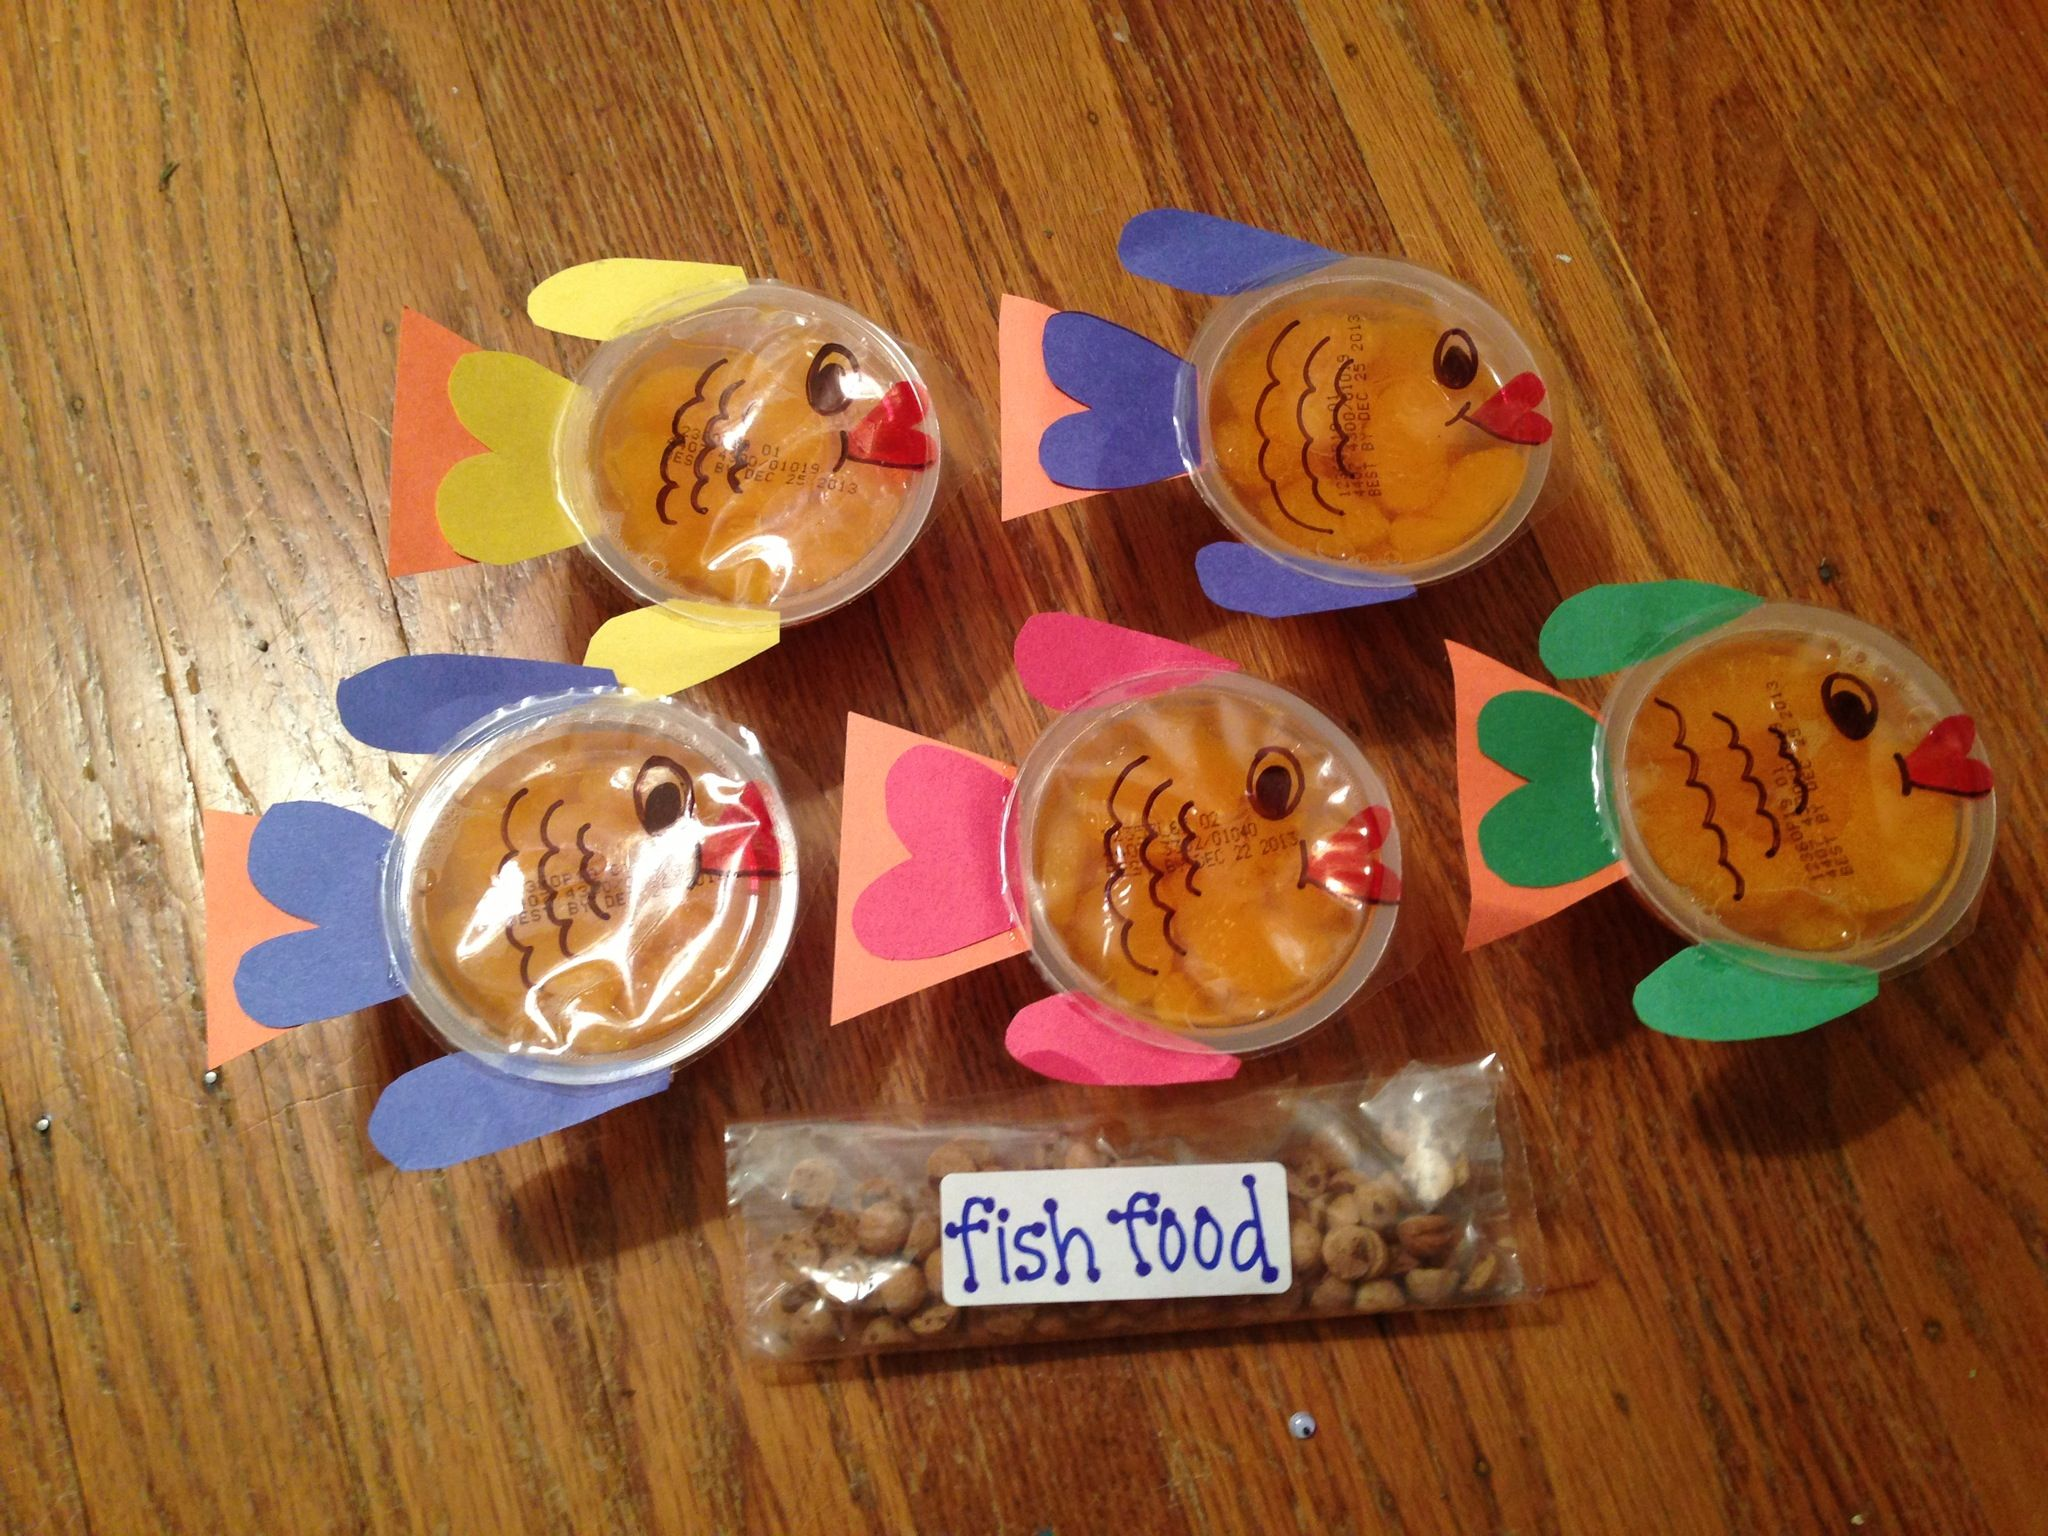 Ocean Themed Preschool Snack Minus The Peanut Fish Food